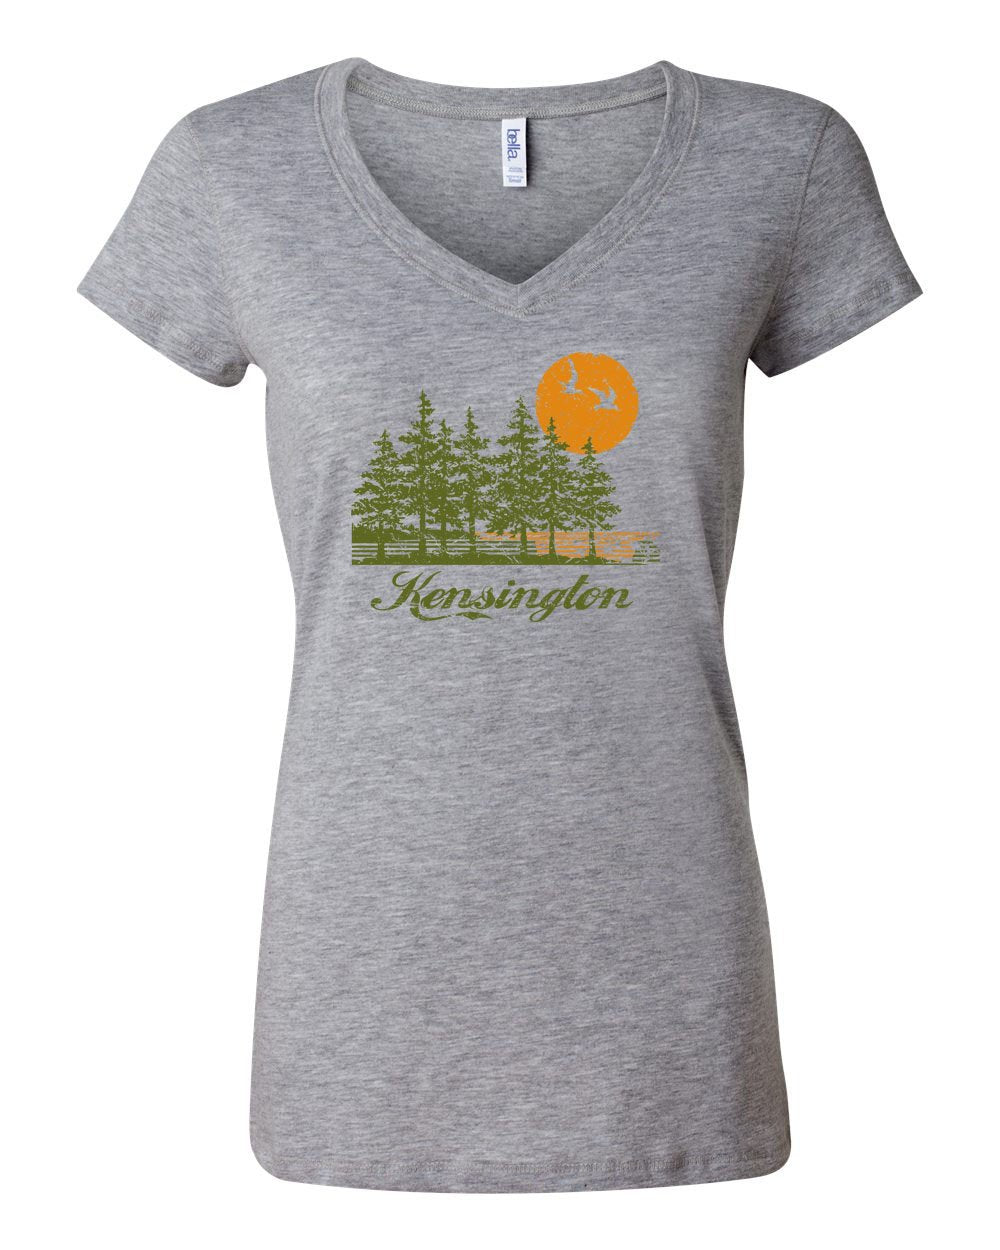 Kensington LADIES Junior Fit V-Neck